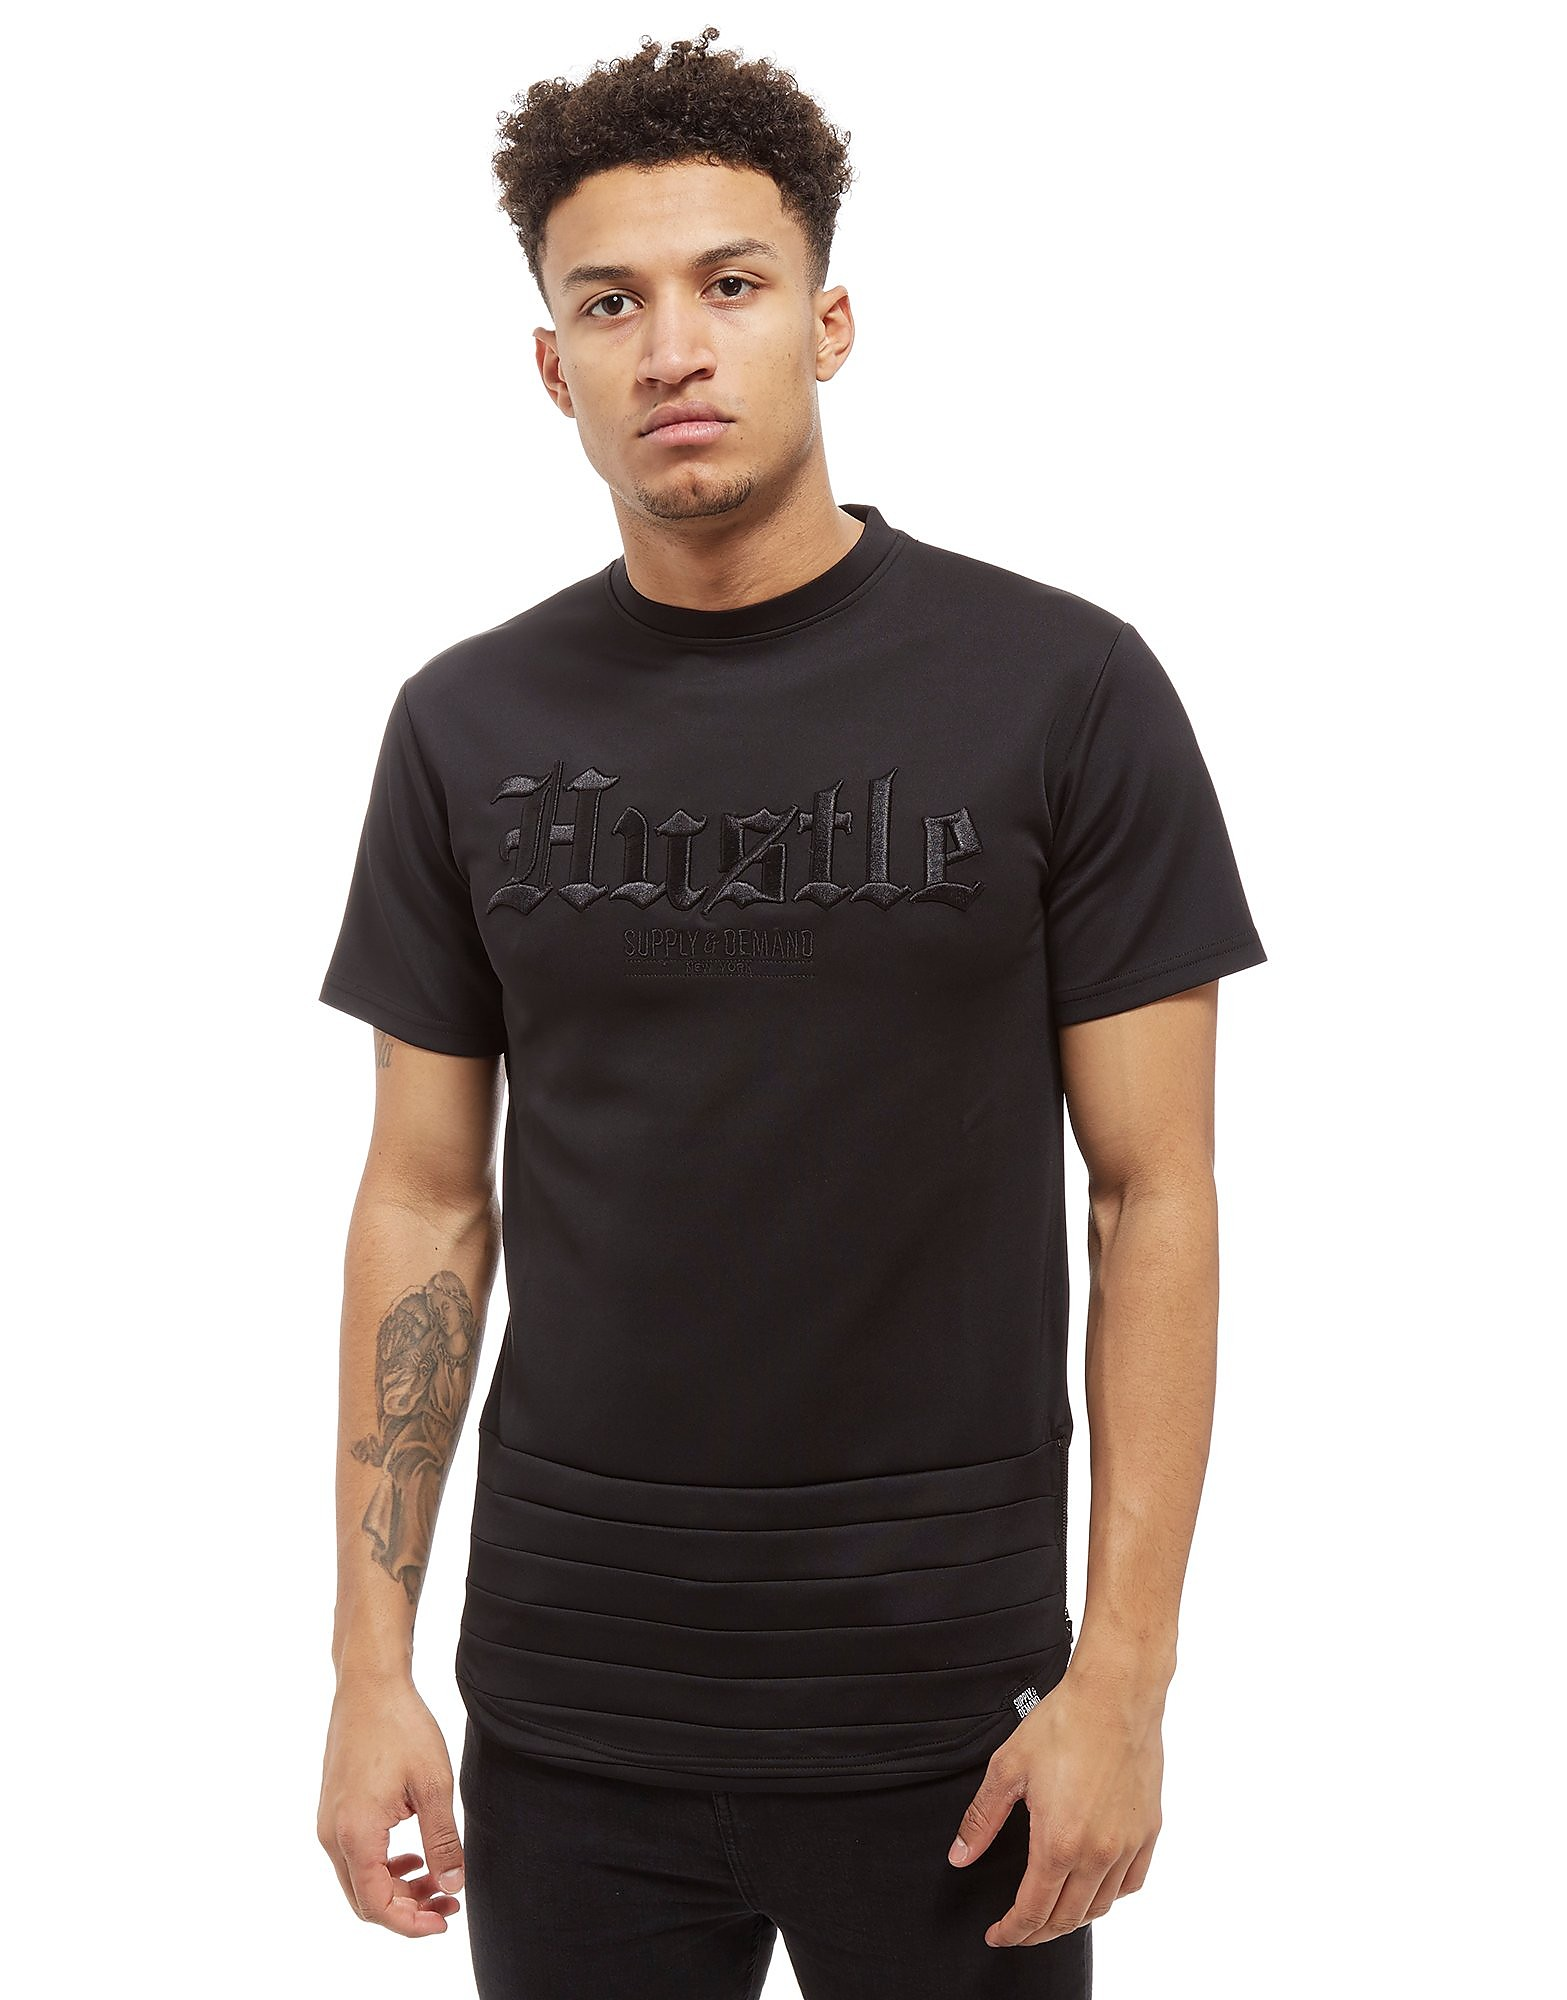 Supply & Demand Gothic Vamp T-Shirt - Only at JD, Black